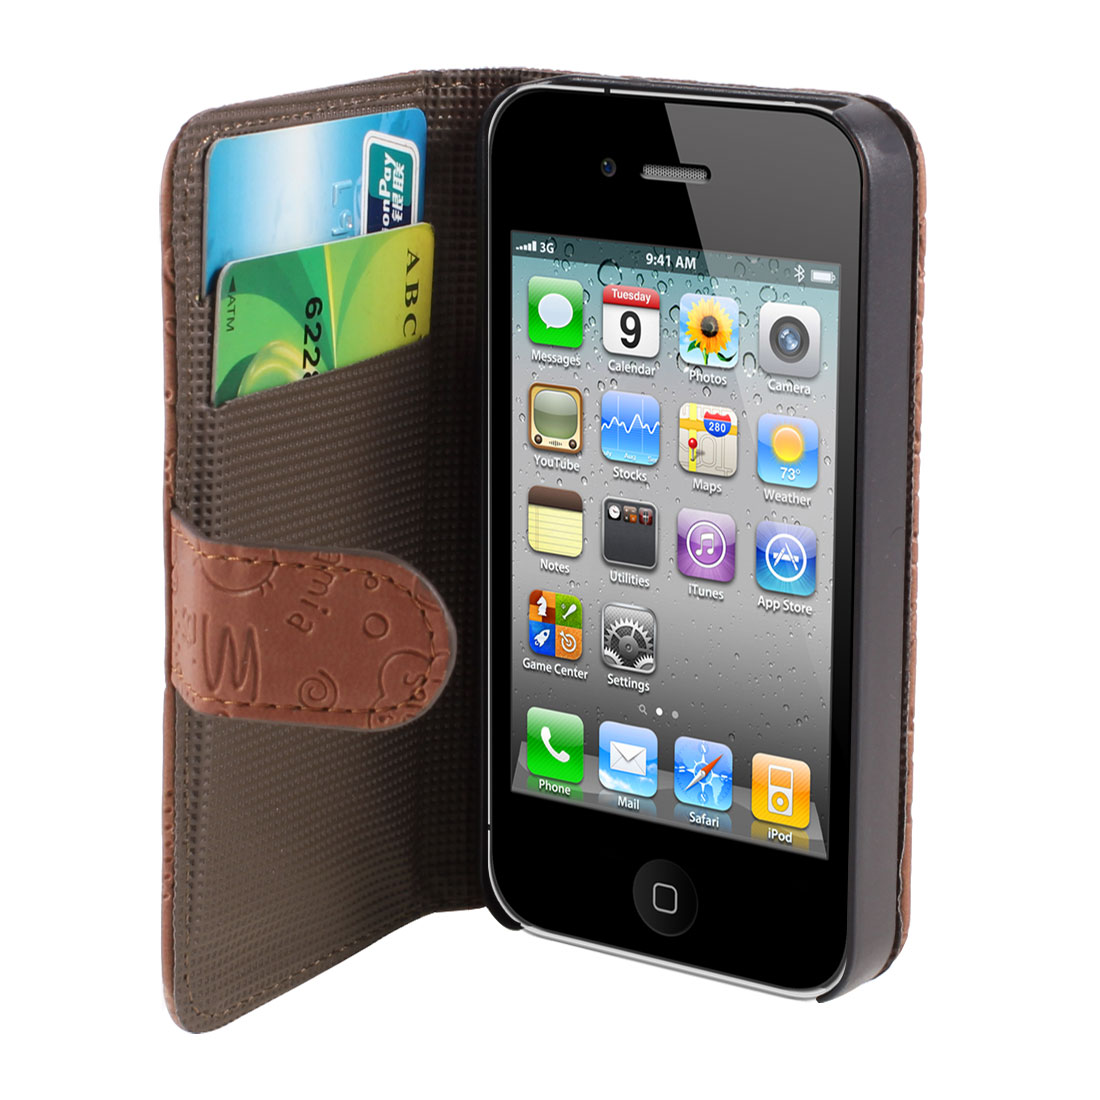 Brown Flip Folio Cute Faerie PU Leather Case Cover for iPhone 4 4S 4GS 4G 4th